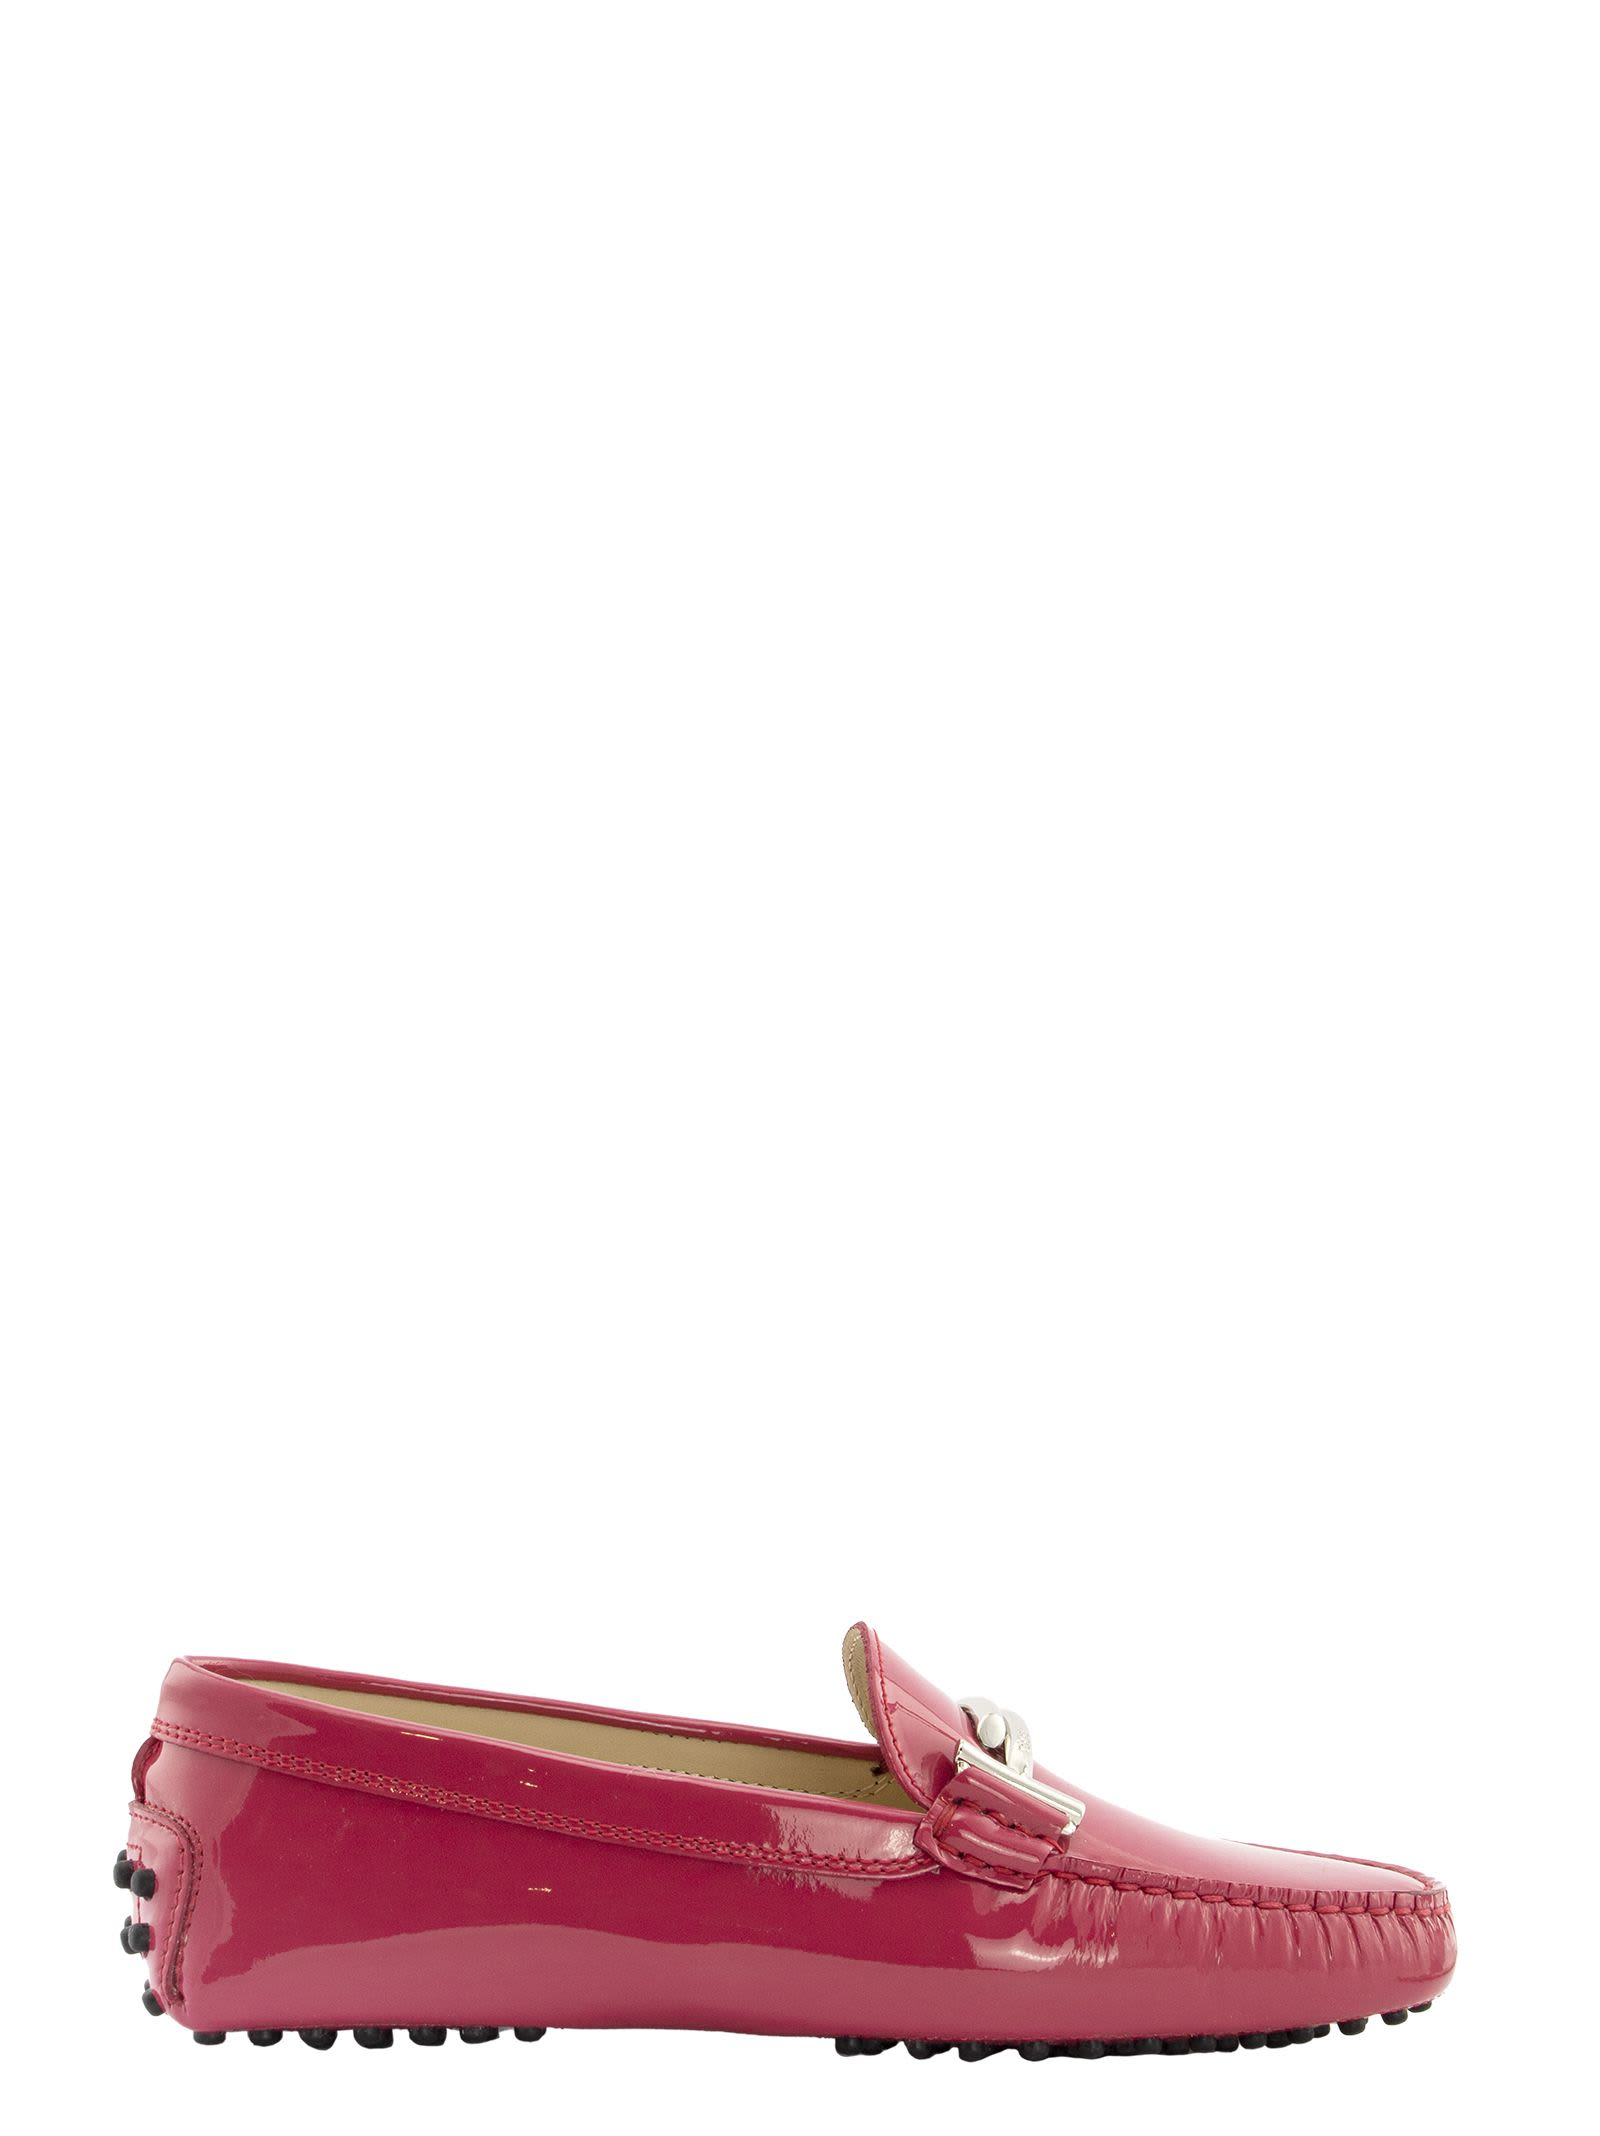 Tods Gommino Driving Shoes In Patent Leather